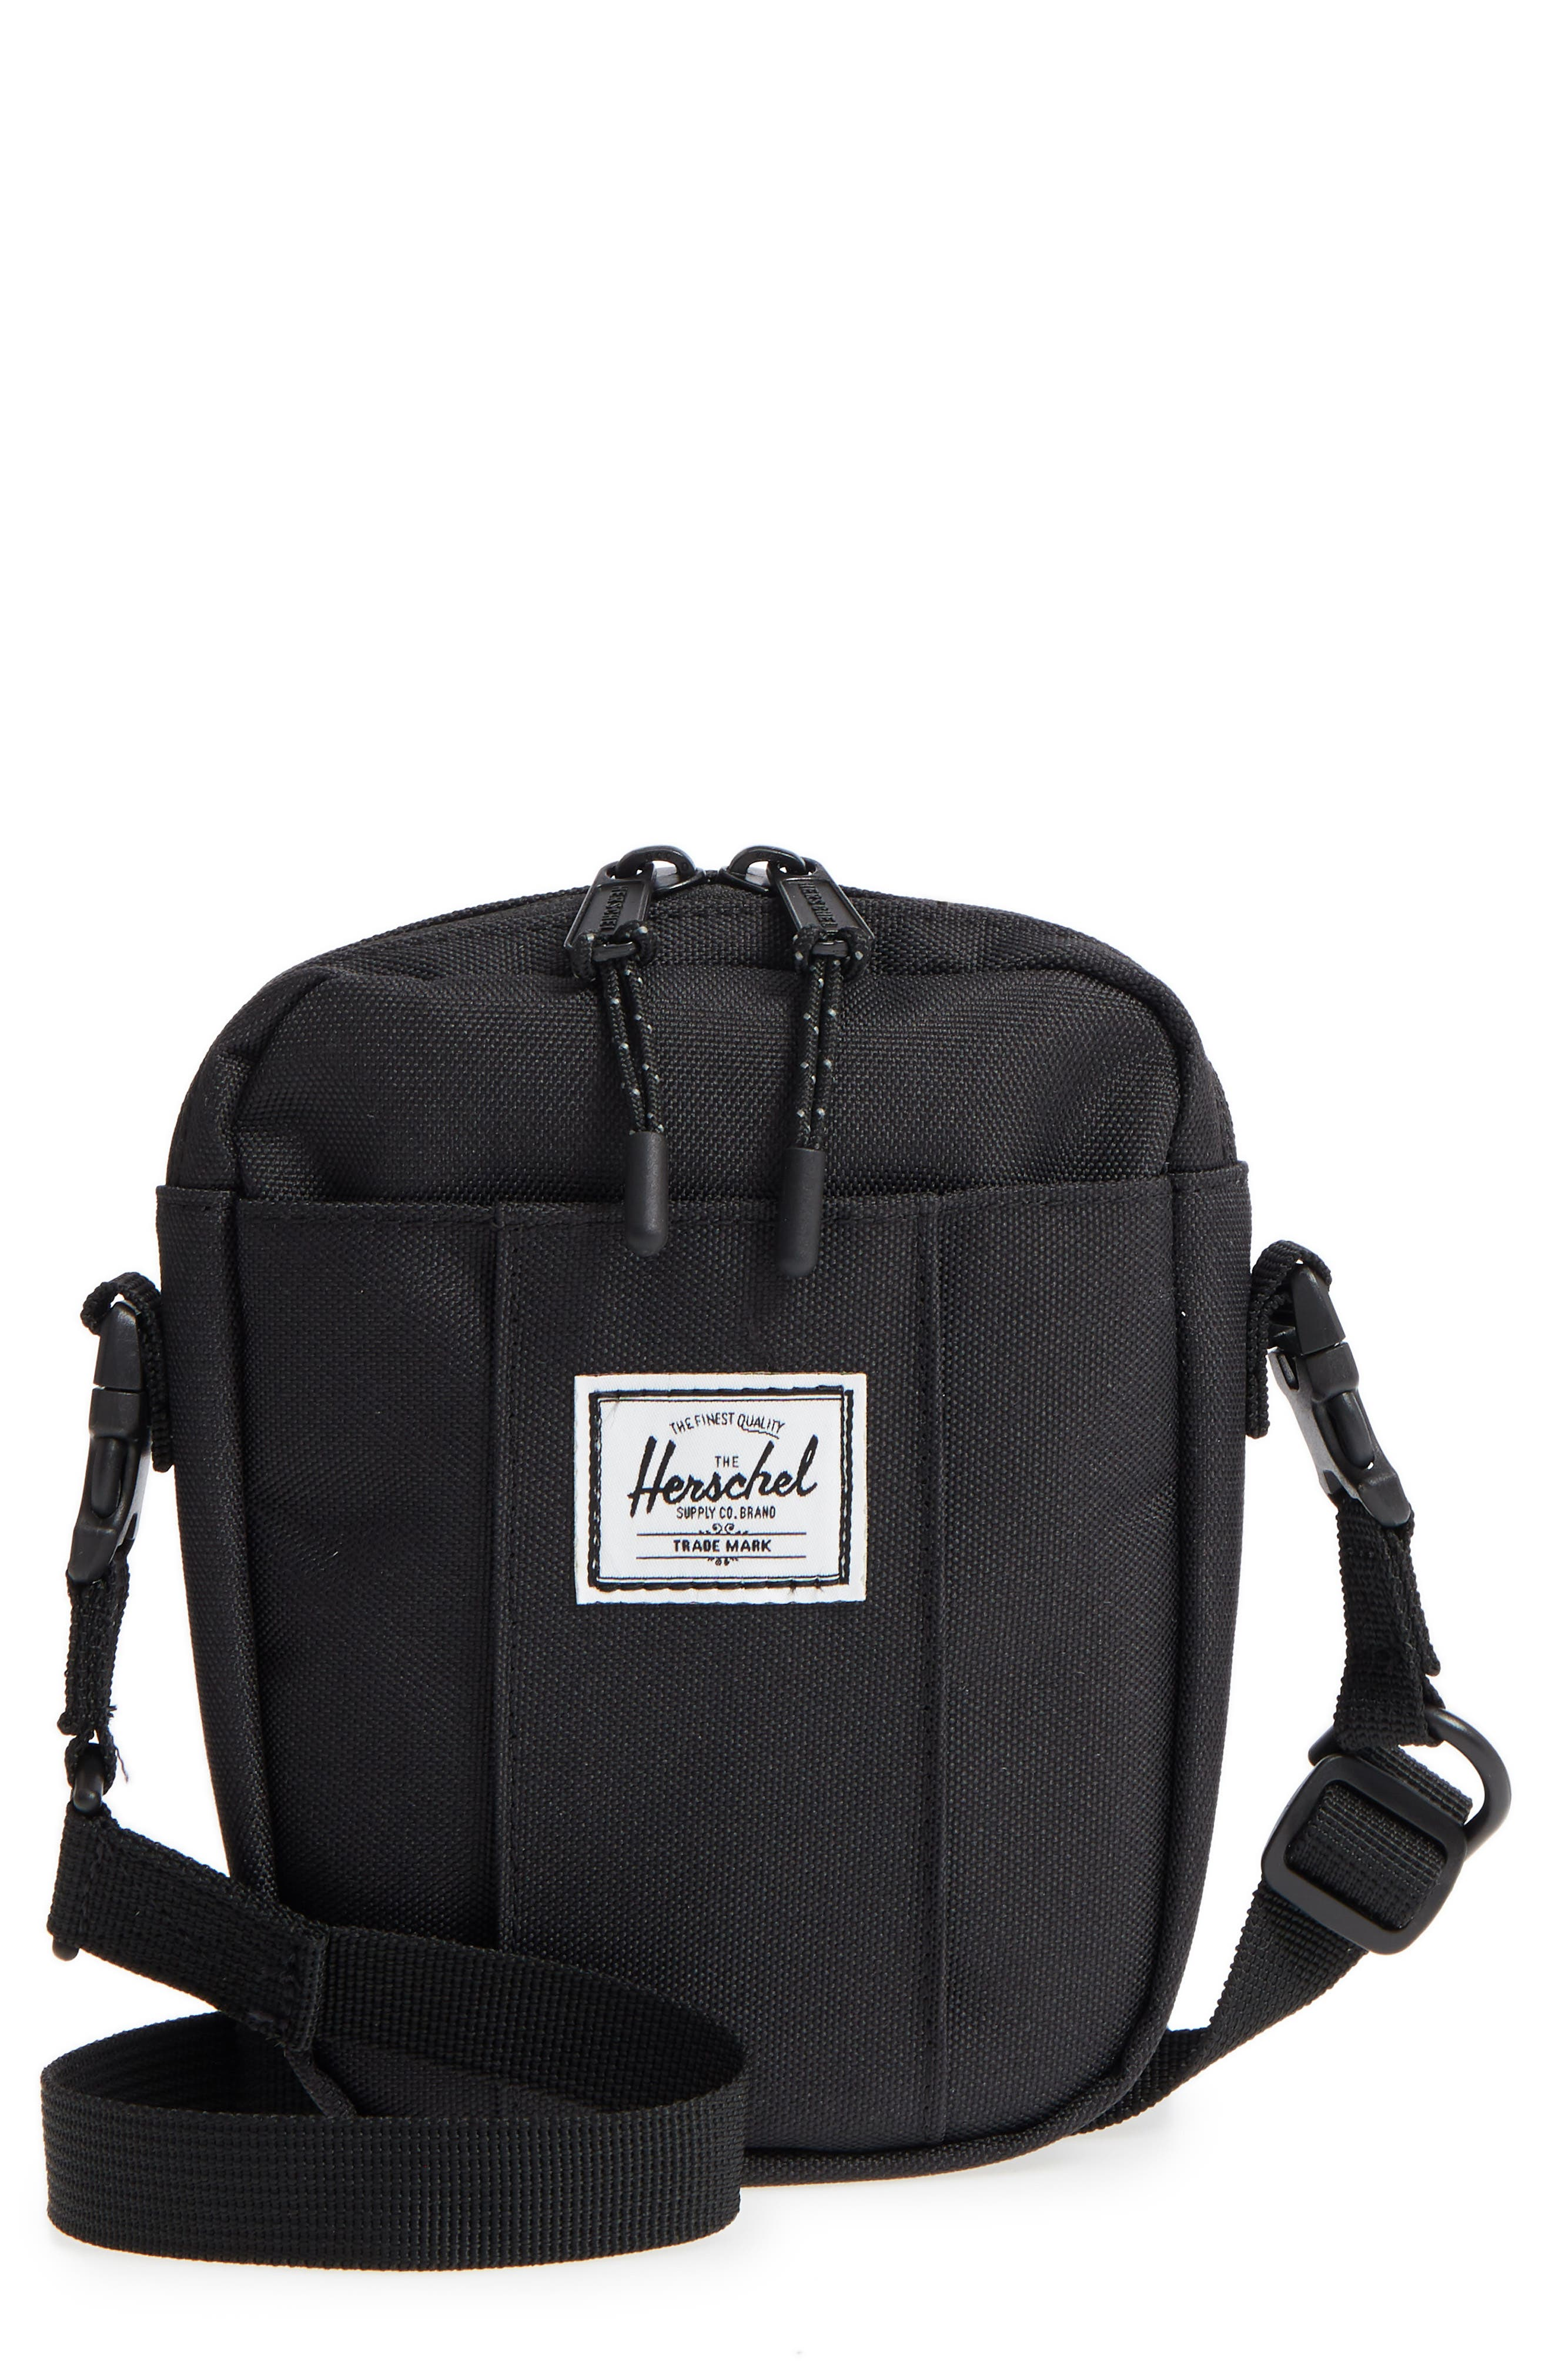 Herschel Supply Co. Cruz Crossbody Bag - Black  677d1a923ef33